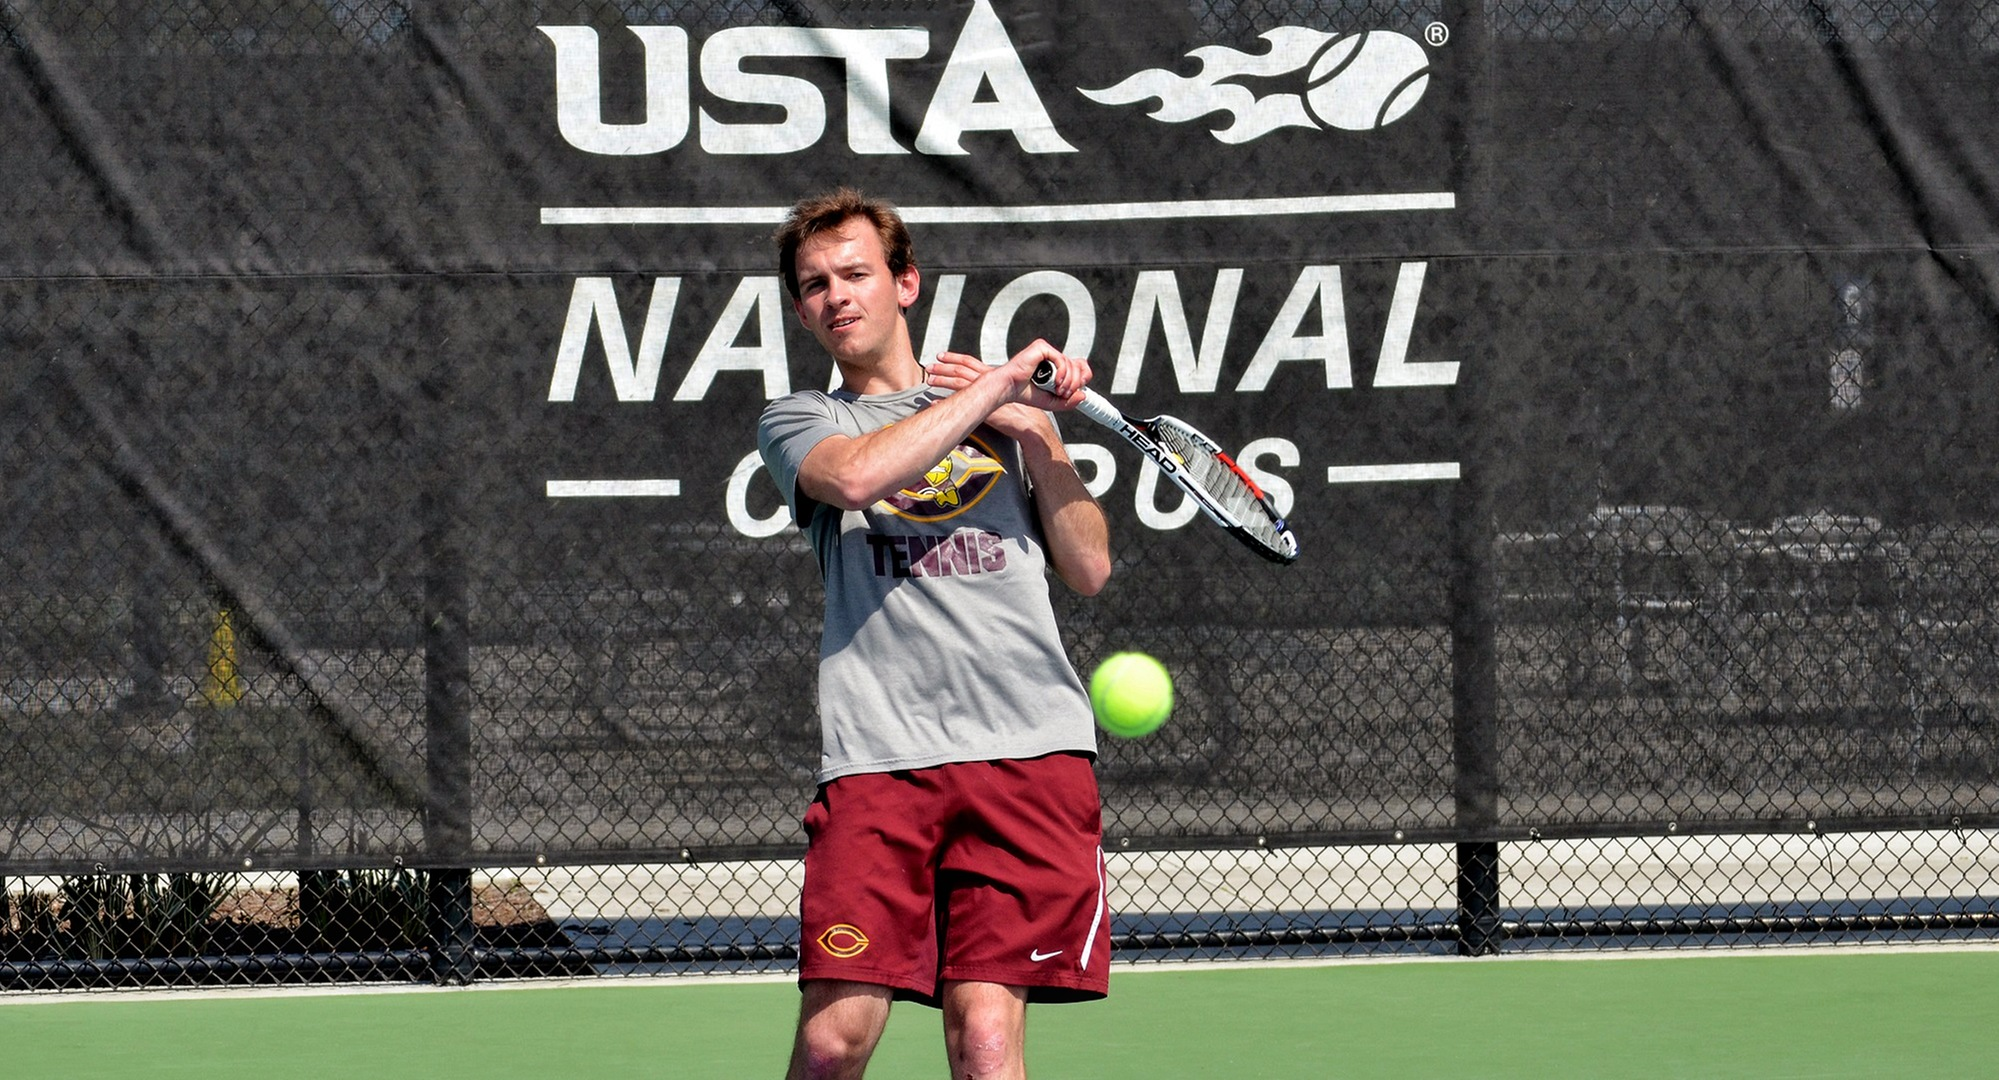 Senior David Youngs hits a forehand during his match at the USTA National Tennis Center. Youngs won his team-leading eighth singles match on Thursday.  (Photo courtesy of Jeff Meyer)